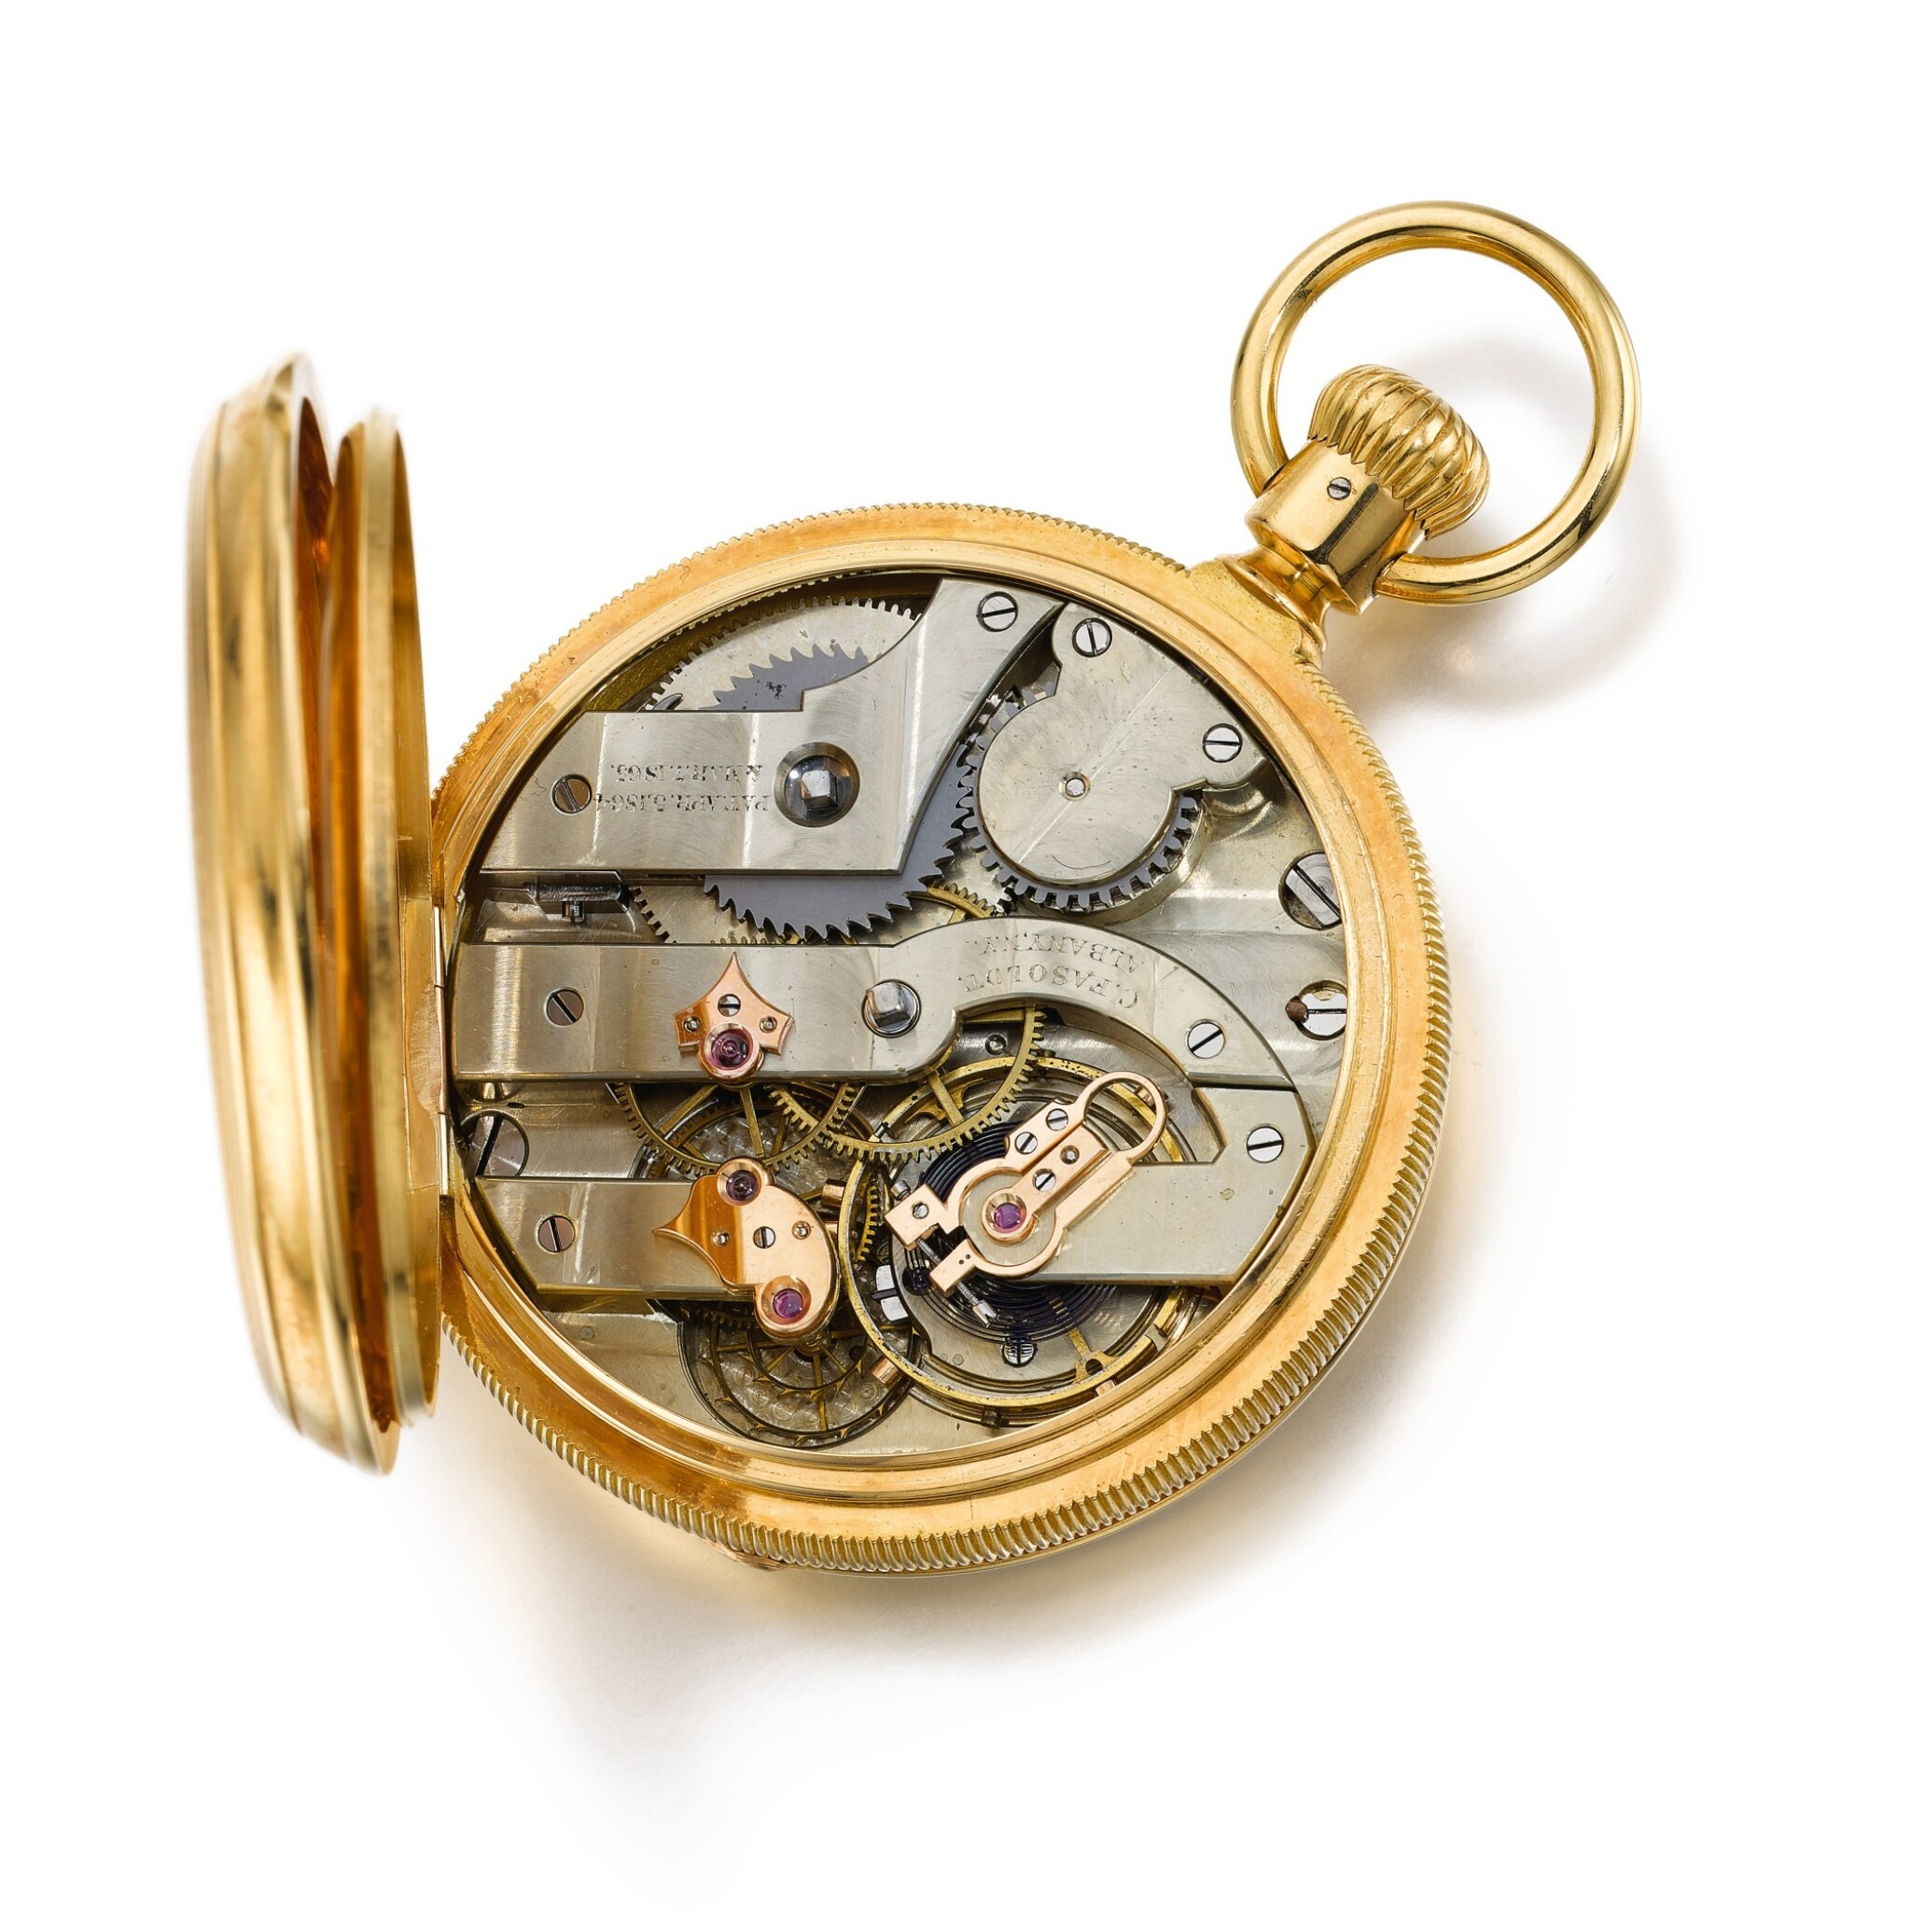 View full screen - View 1 of Lot 15. CHARLES FASOLDT, ALBANY, NY  [Charles Fasoldt,紐約阿伯尼]  |  A VERY RARE AND FINE GOLD OPEN-FACED KEYLESS LEVER POCKET CHRONOMETER WITH DOUBLE WHEEL ESCAPEMENT   CIRCA 1870, CASE NO. 353  [ 極罕有黃金精密計時懷錶備雙齒輪擒縱機芯,年份約1870,錶殼編號353].